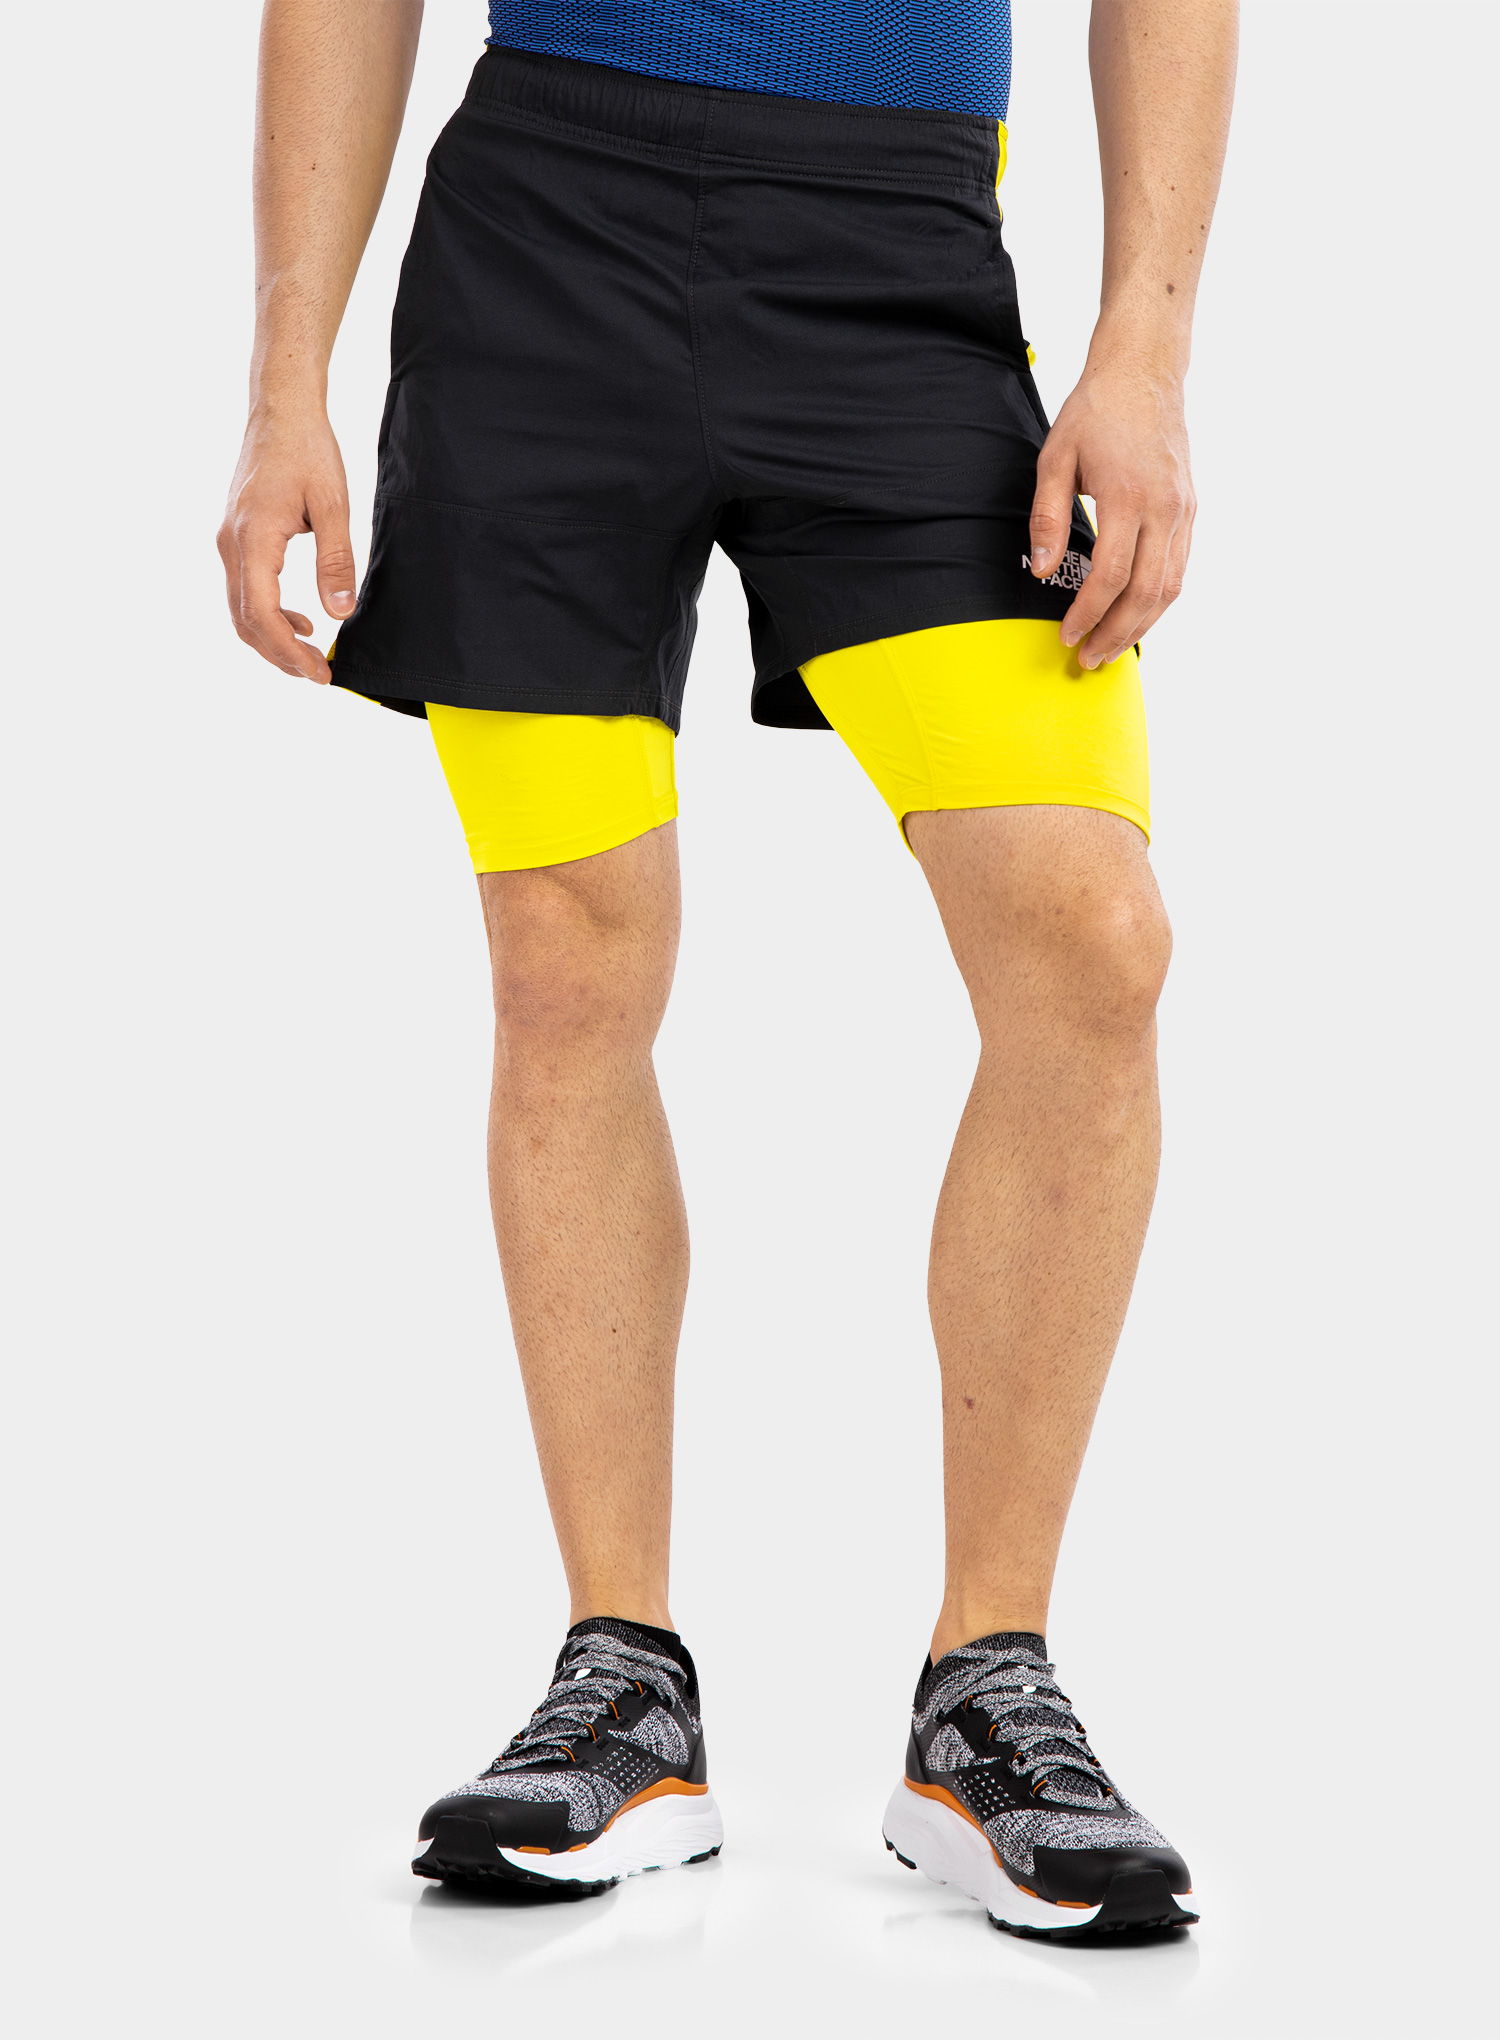 Spodenki The North Face Active Trail Dual Short - grey/sulph - zdjęcie nr. 1